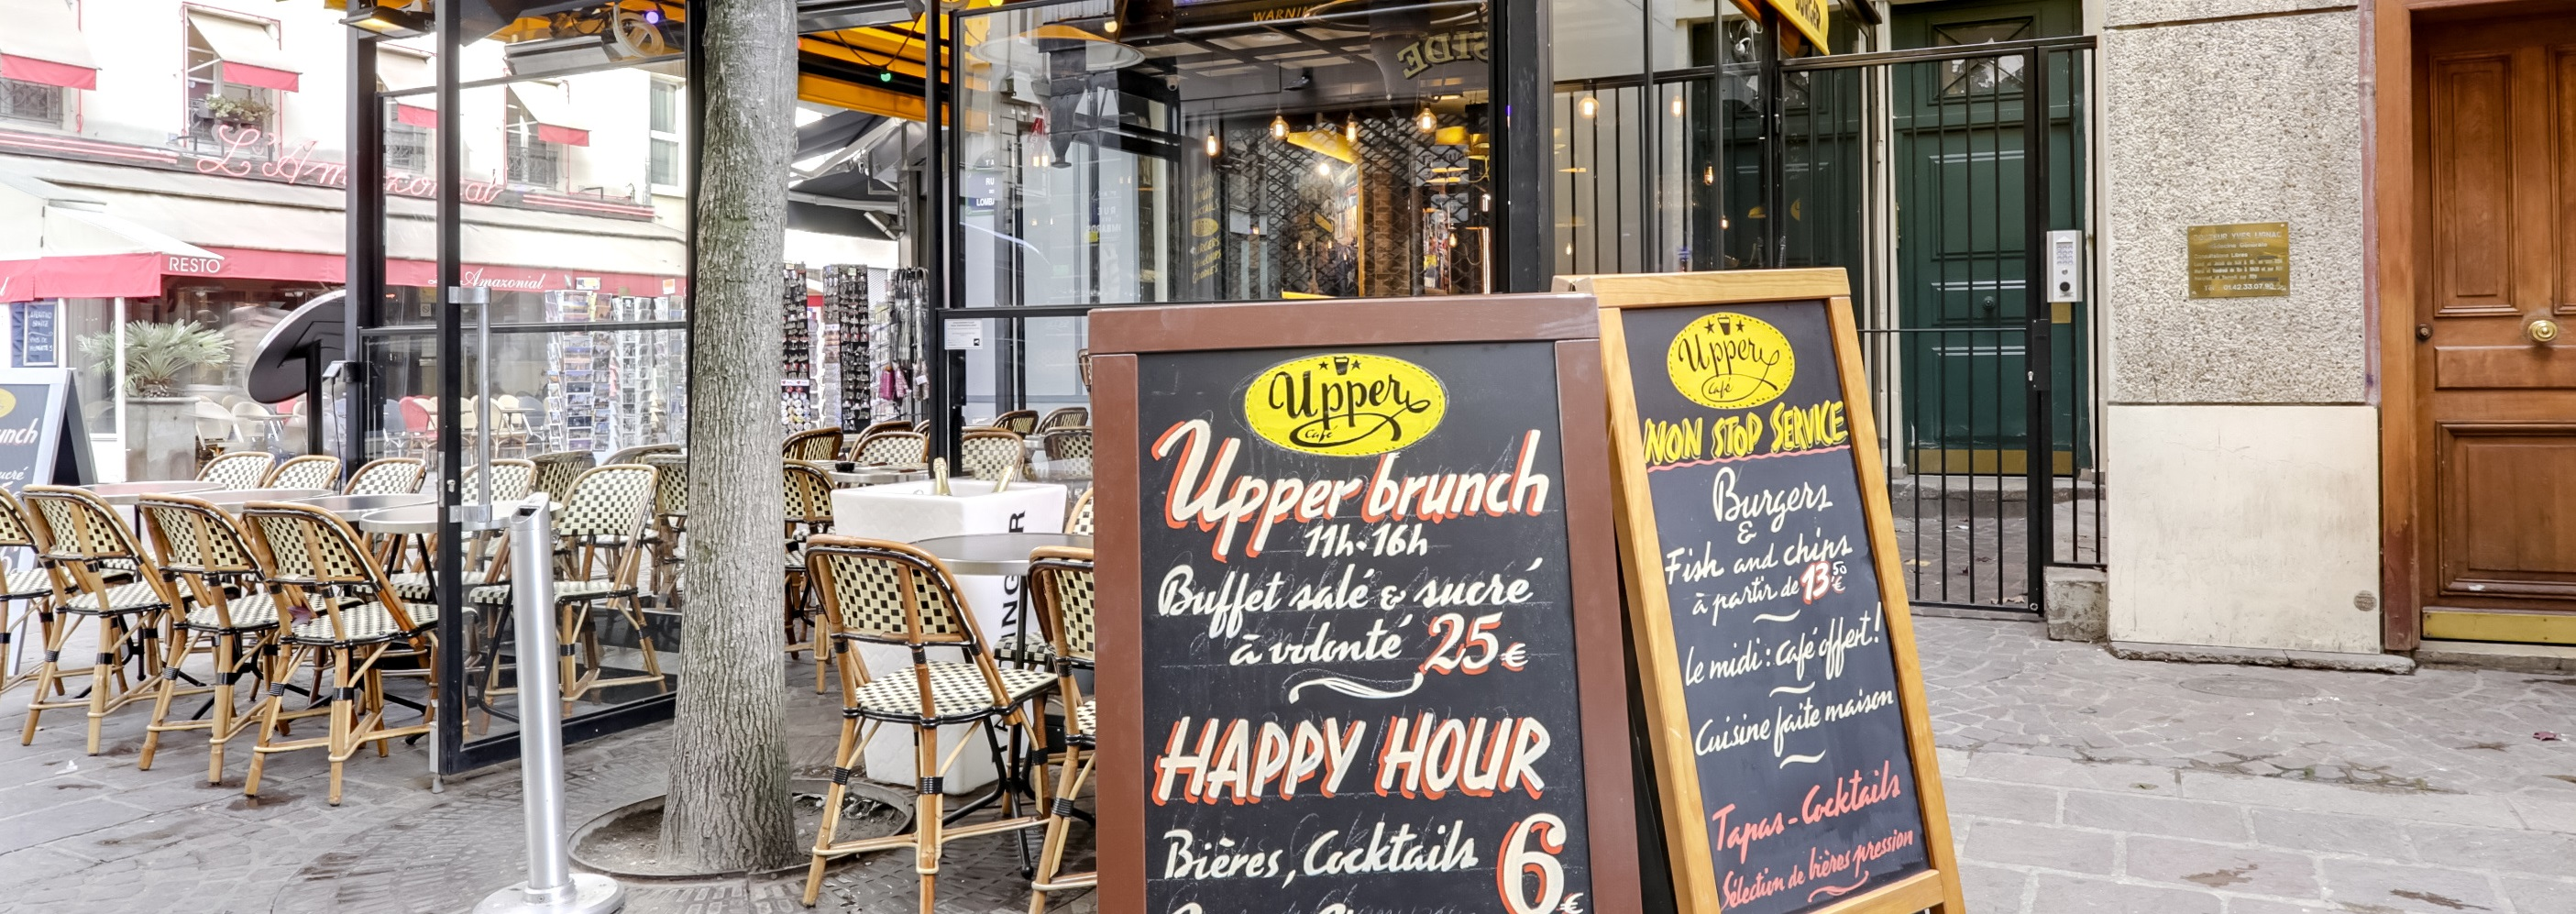 Brunch Upper Café- Les Halles (75001 Paris)